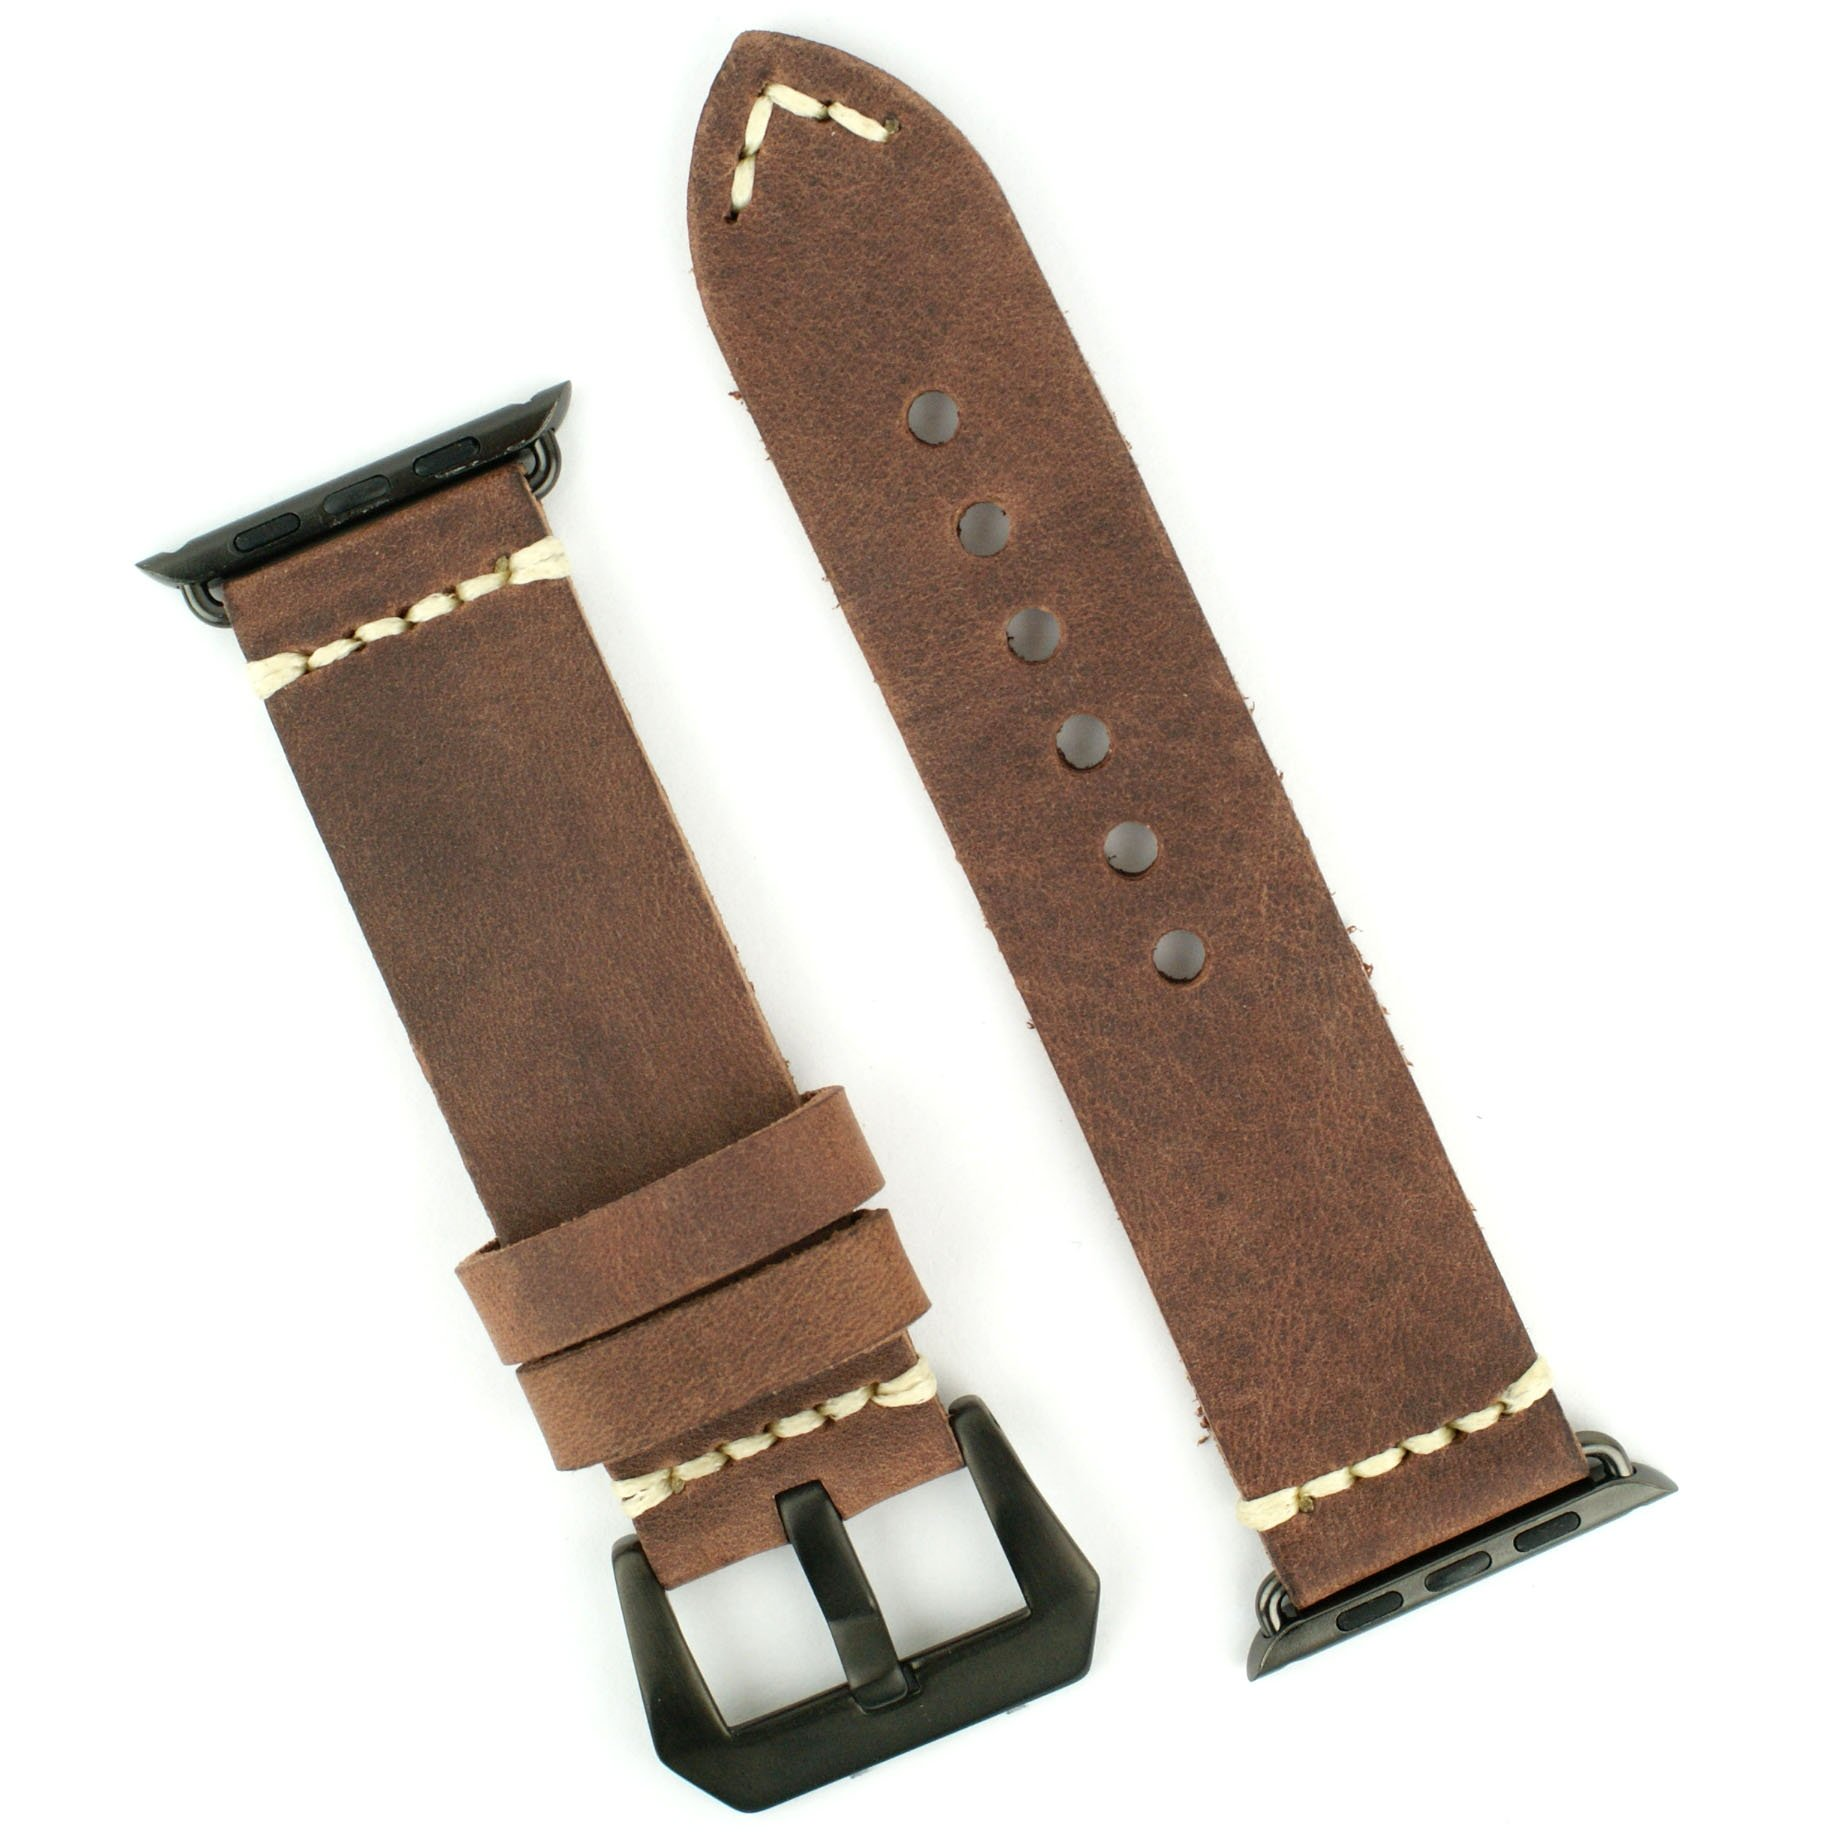 APPLE WATCH BAND Replacement band for 42mm APPLE WATCH BLACK STAINLESS STEEL Handsewn Italian Leather Vintage Strap (Brown)